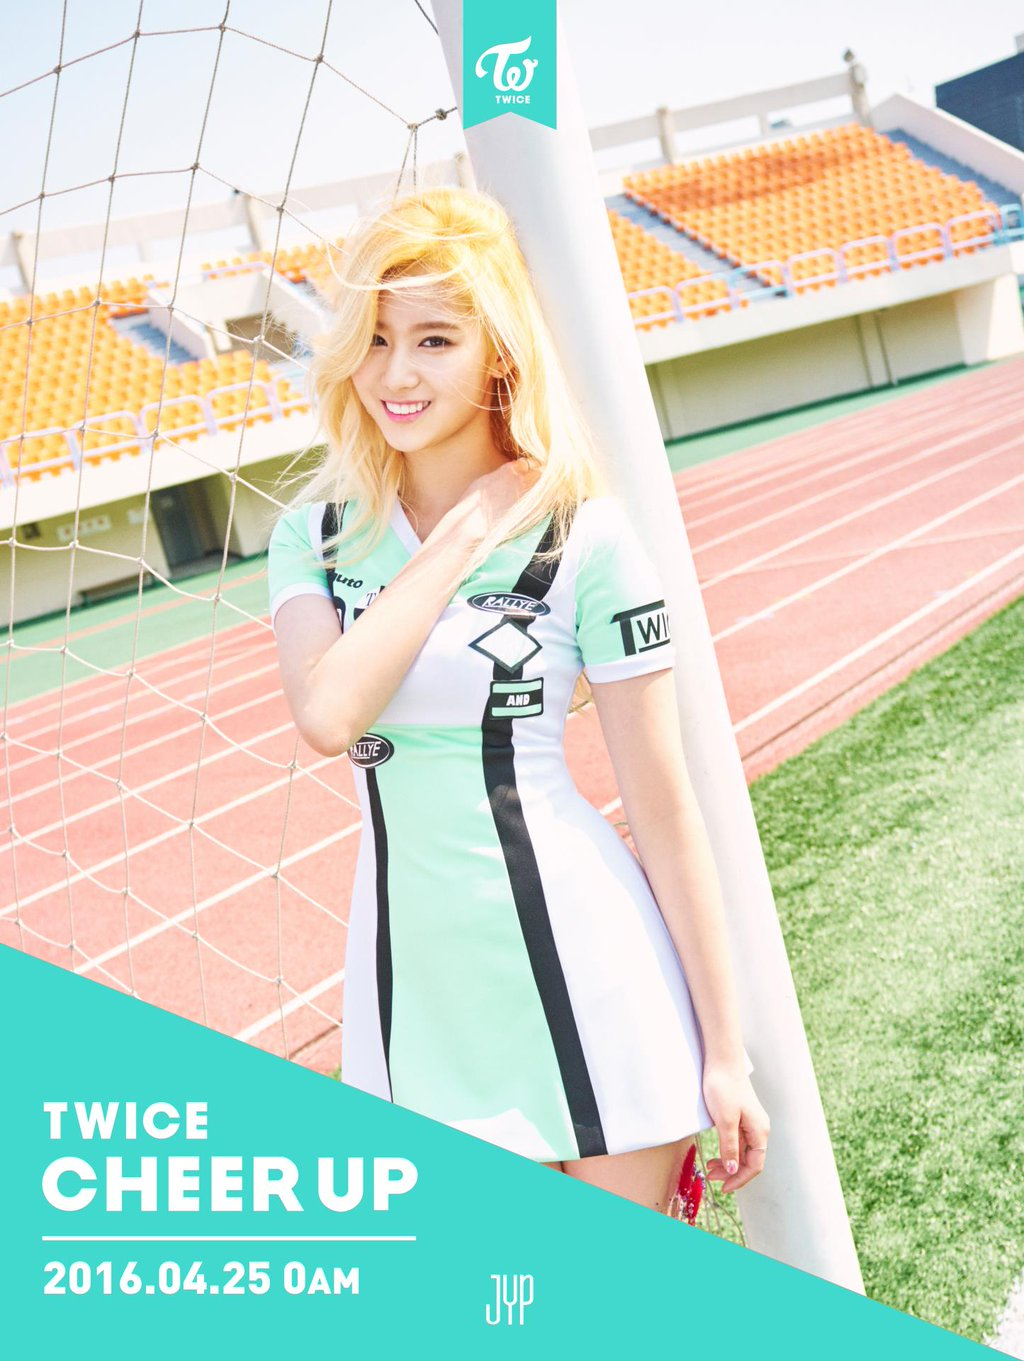 sana cheer up teaser